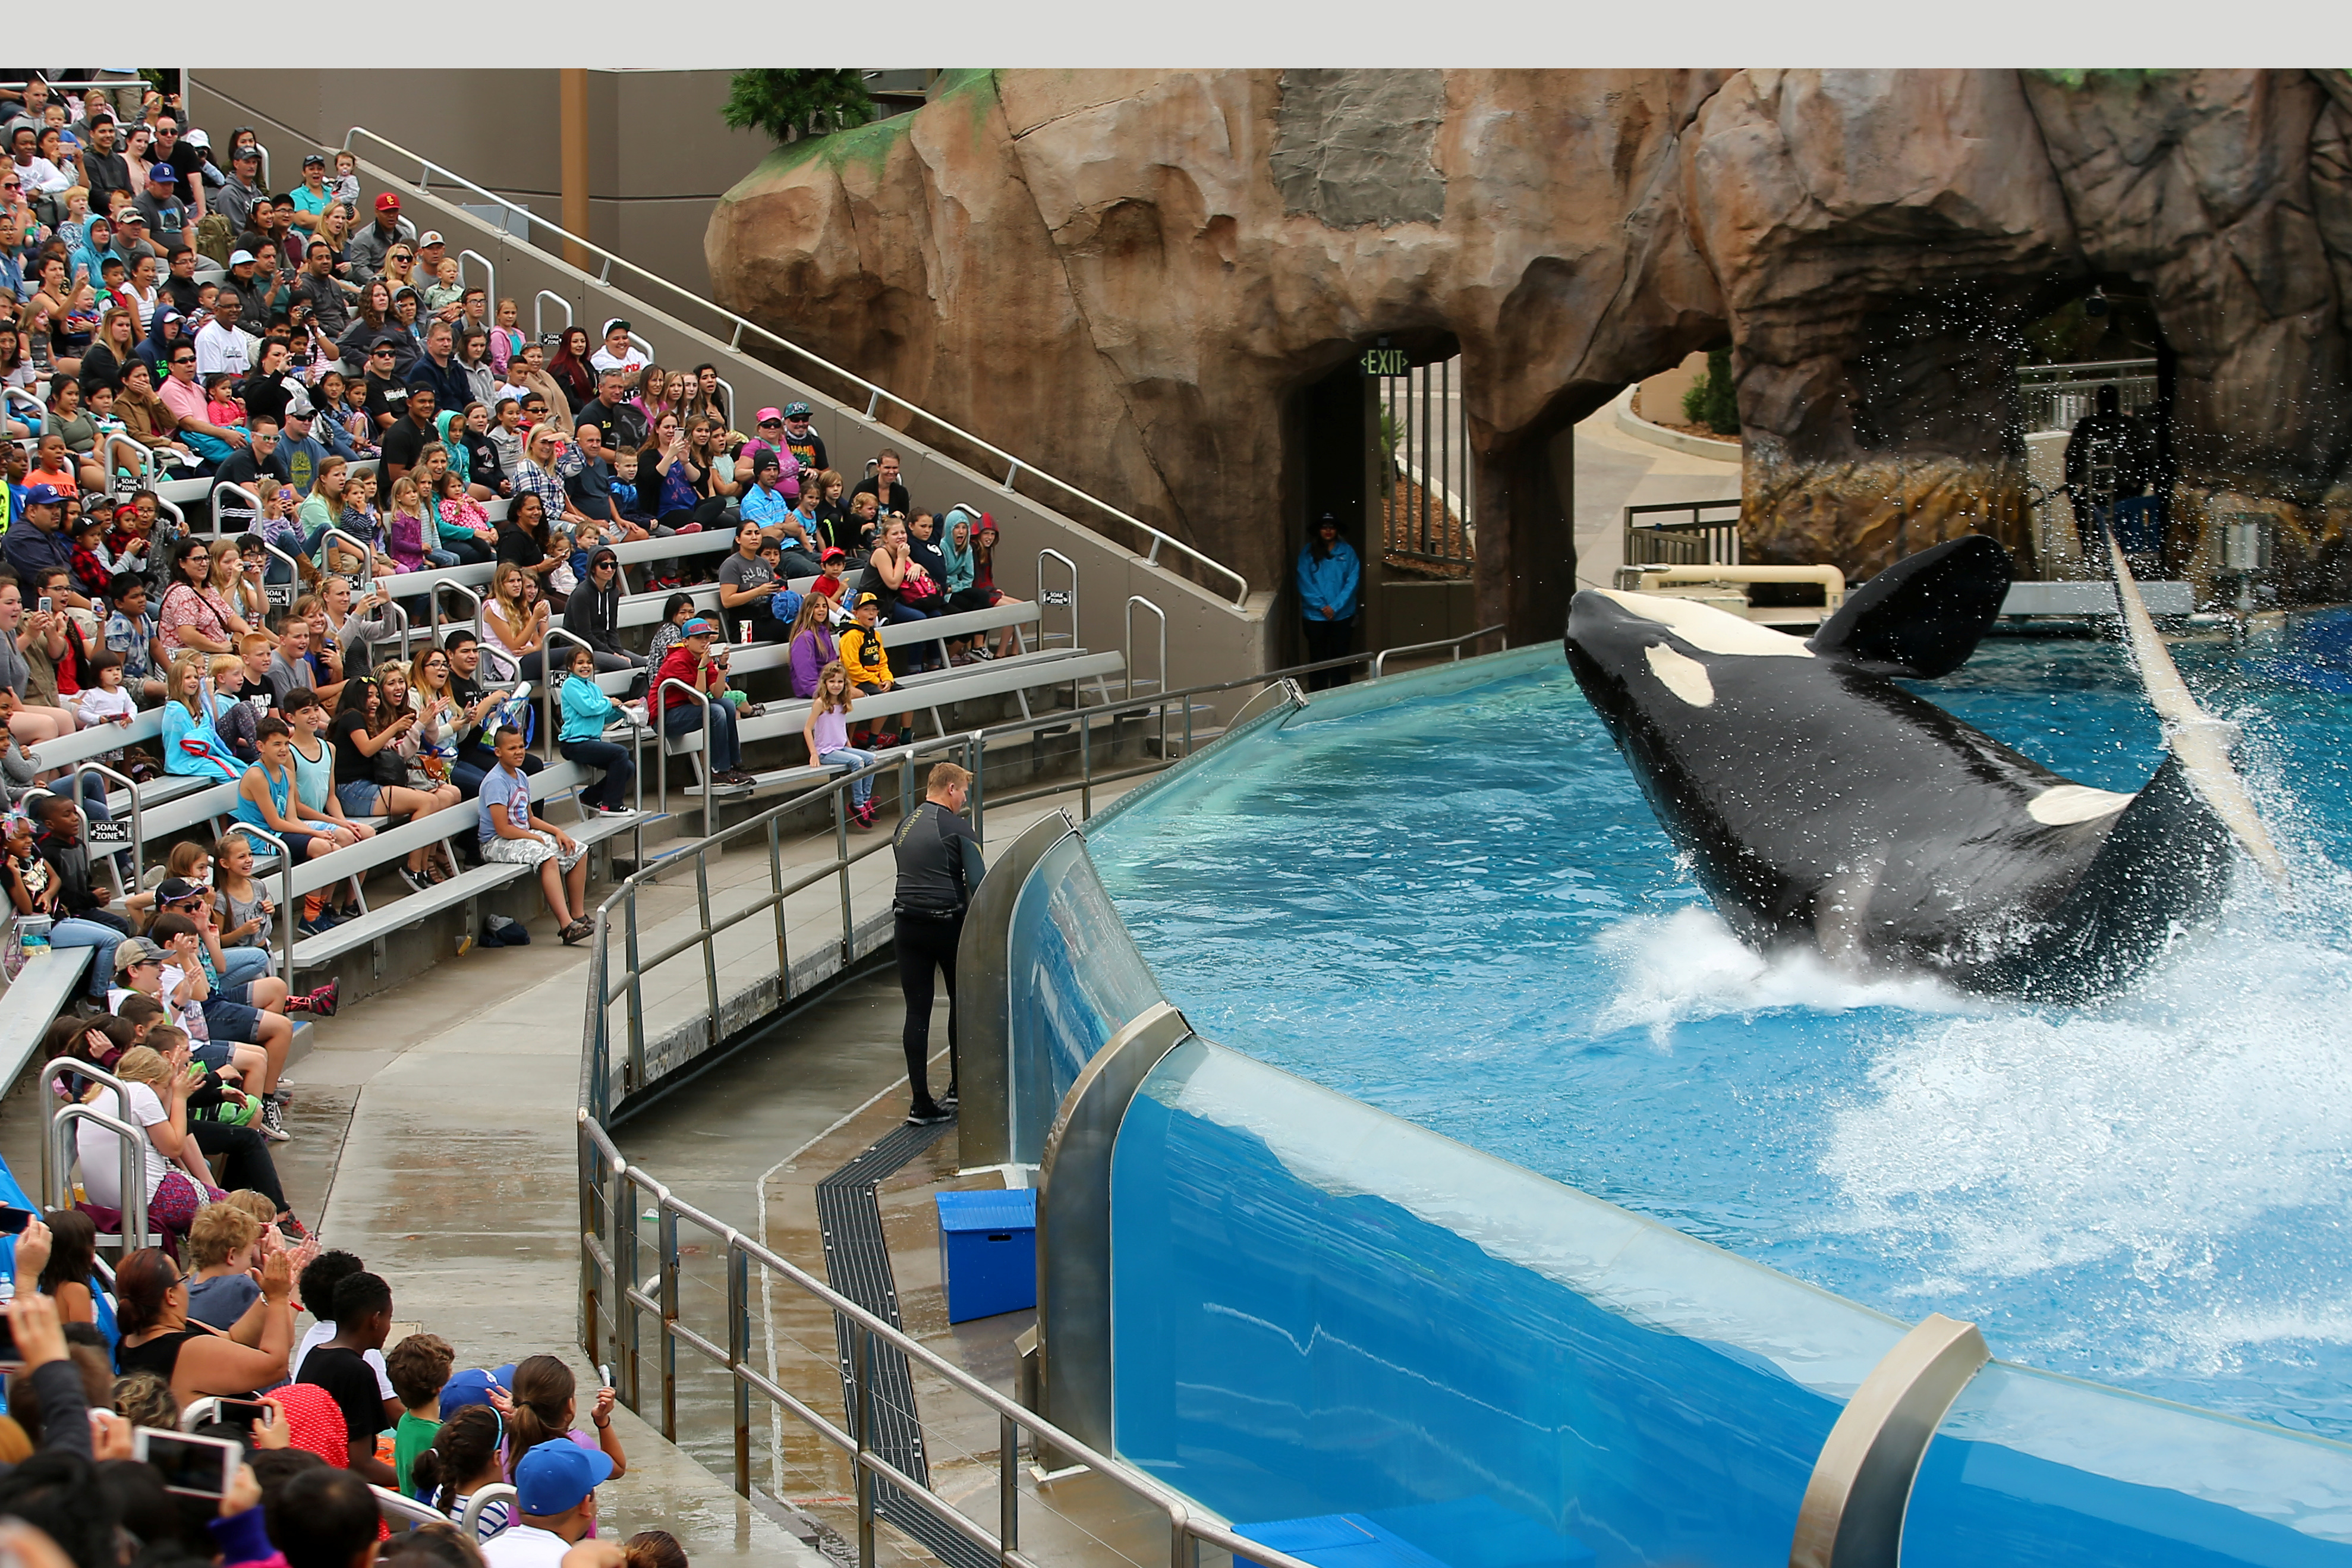 SeaWorld unveils its new Orca Encounter show in San Diego, California, U.S., May 31, 2017. (REUTERS/Mike Blake)